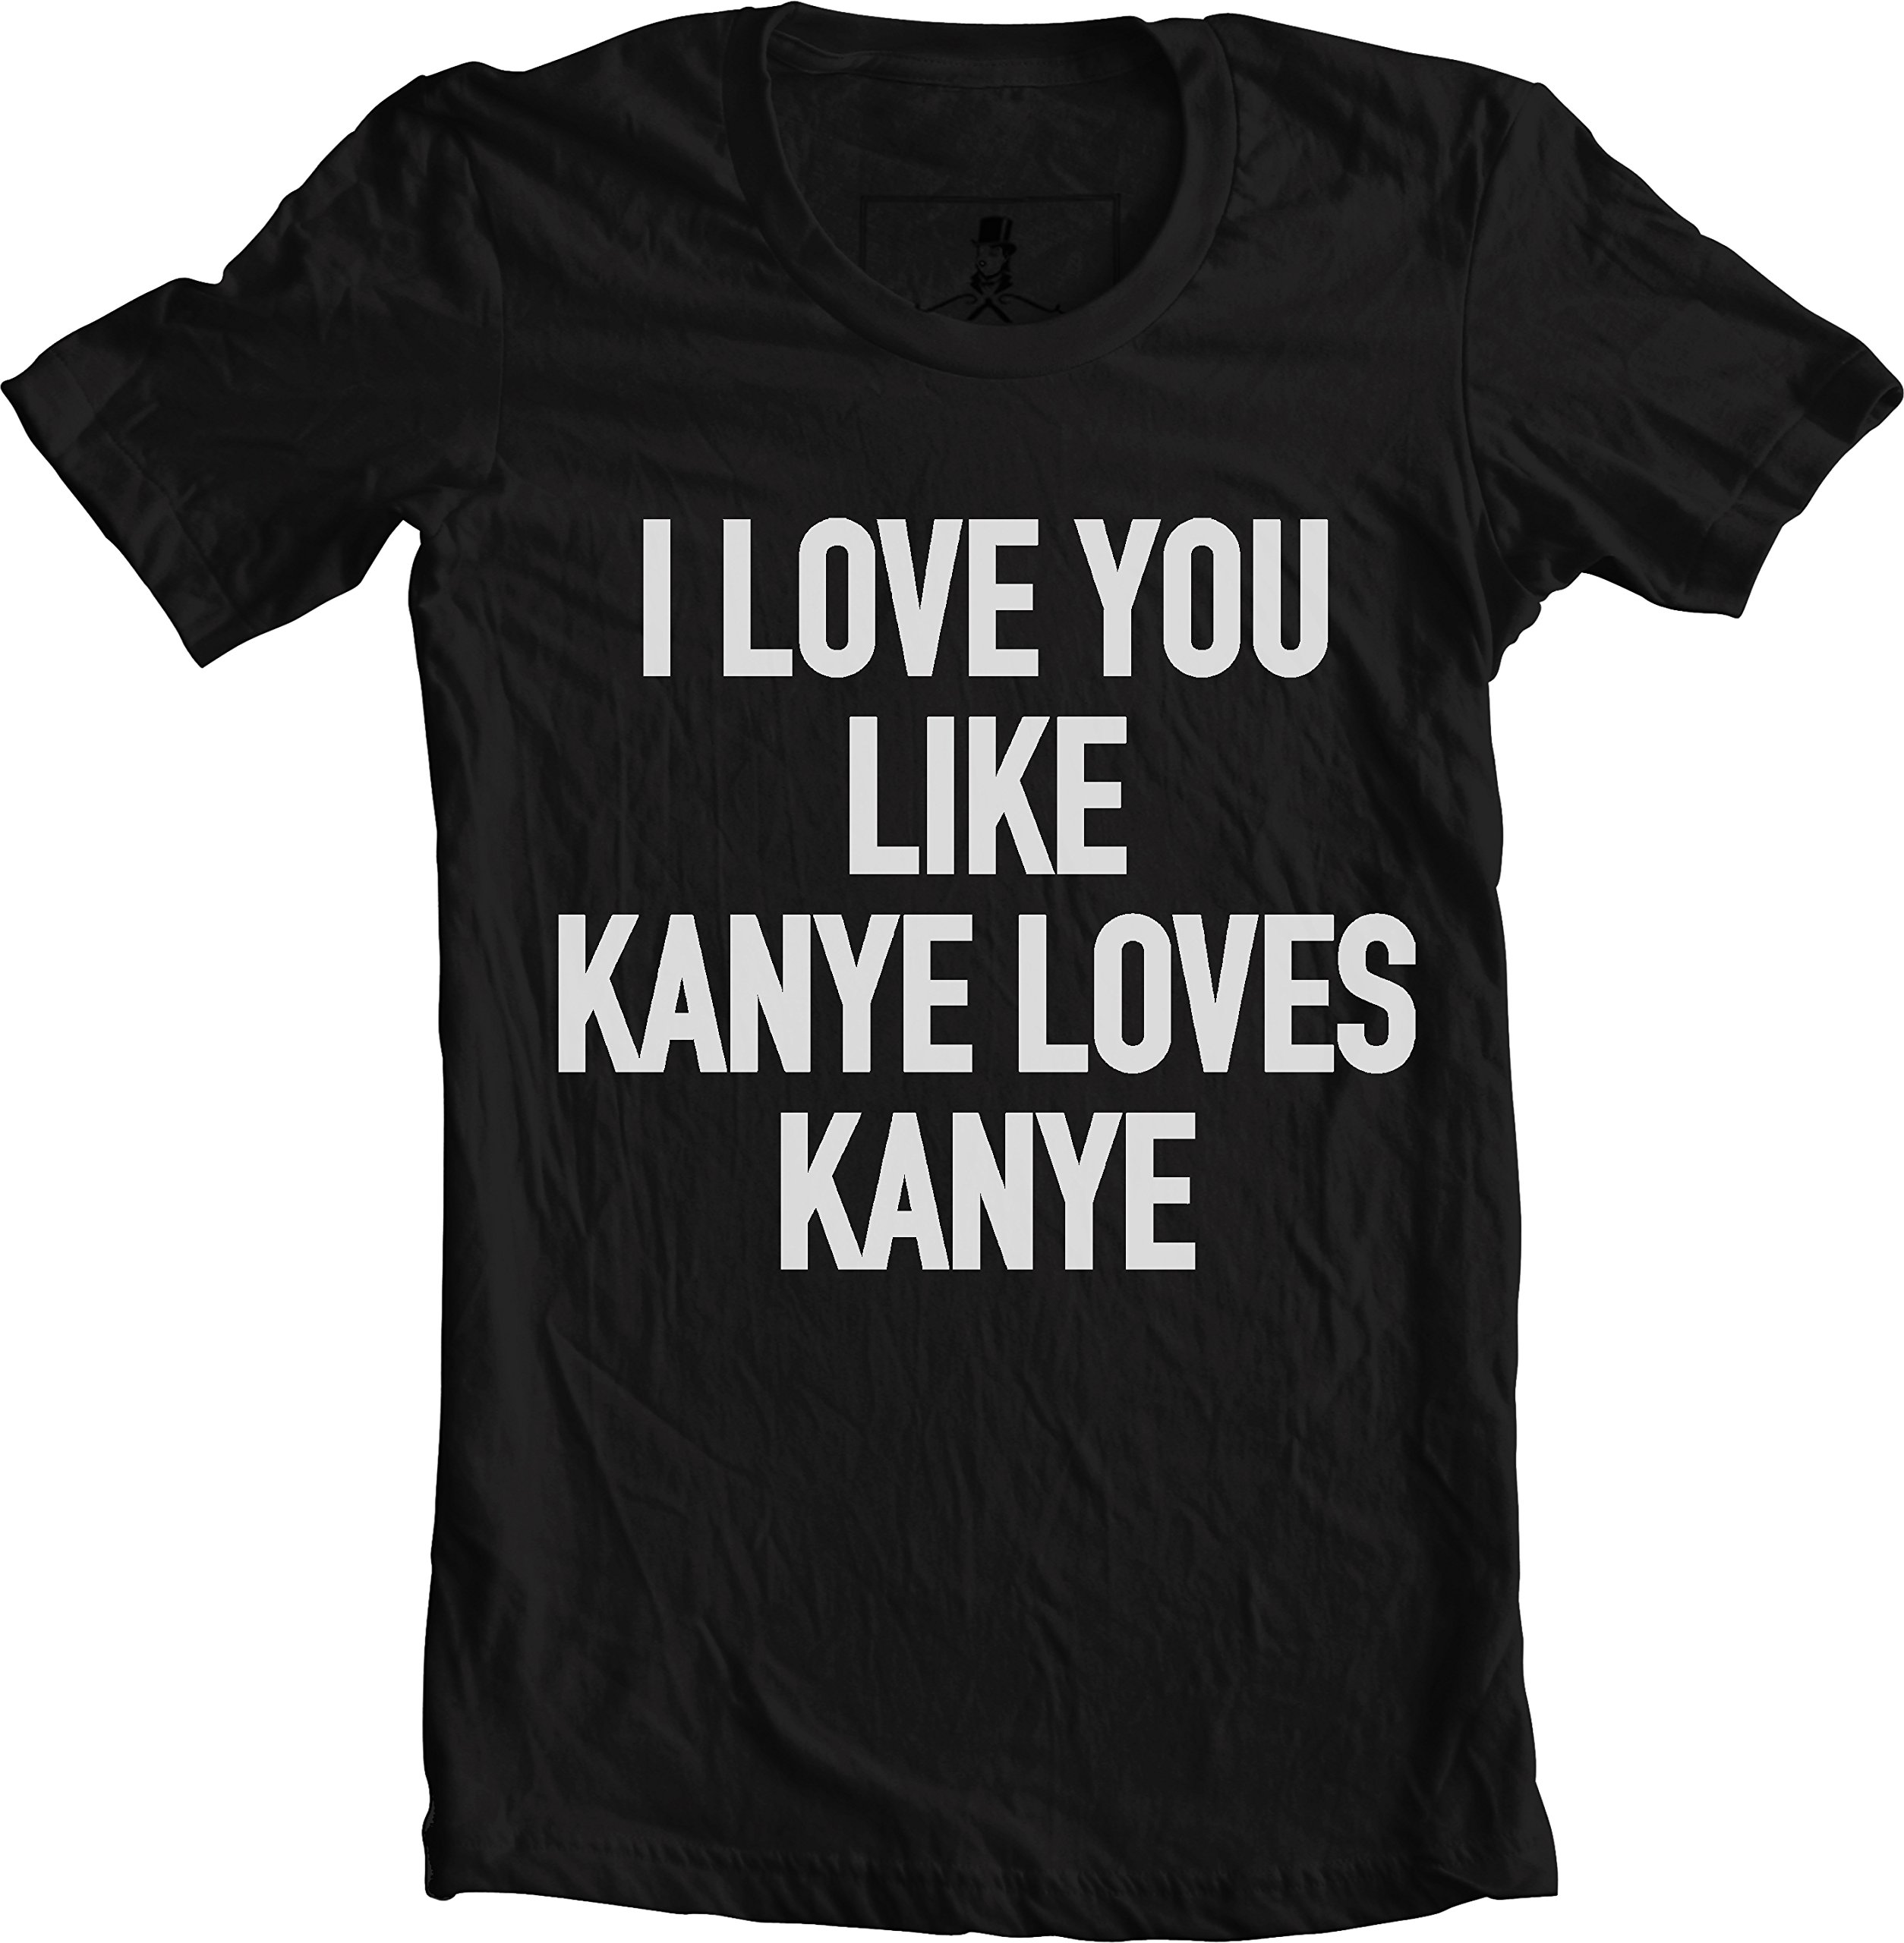 Hip Hop Rap Lyrics Quotes Music Gray Unisex T-Shirt (Medium, Kanye Love Black) by Xqste (Image #1)